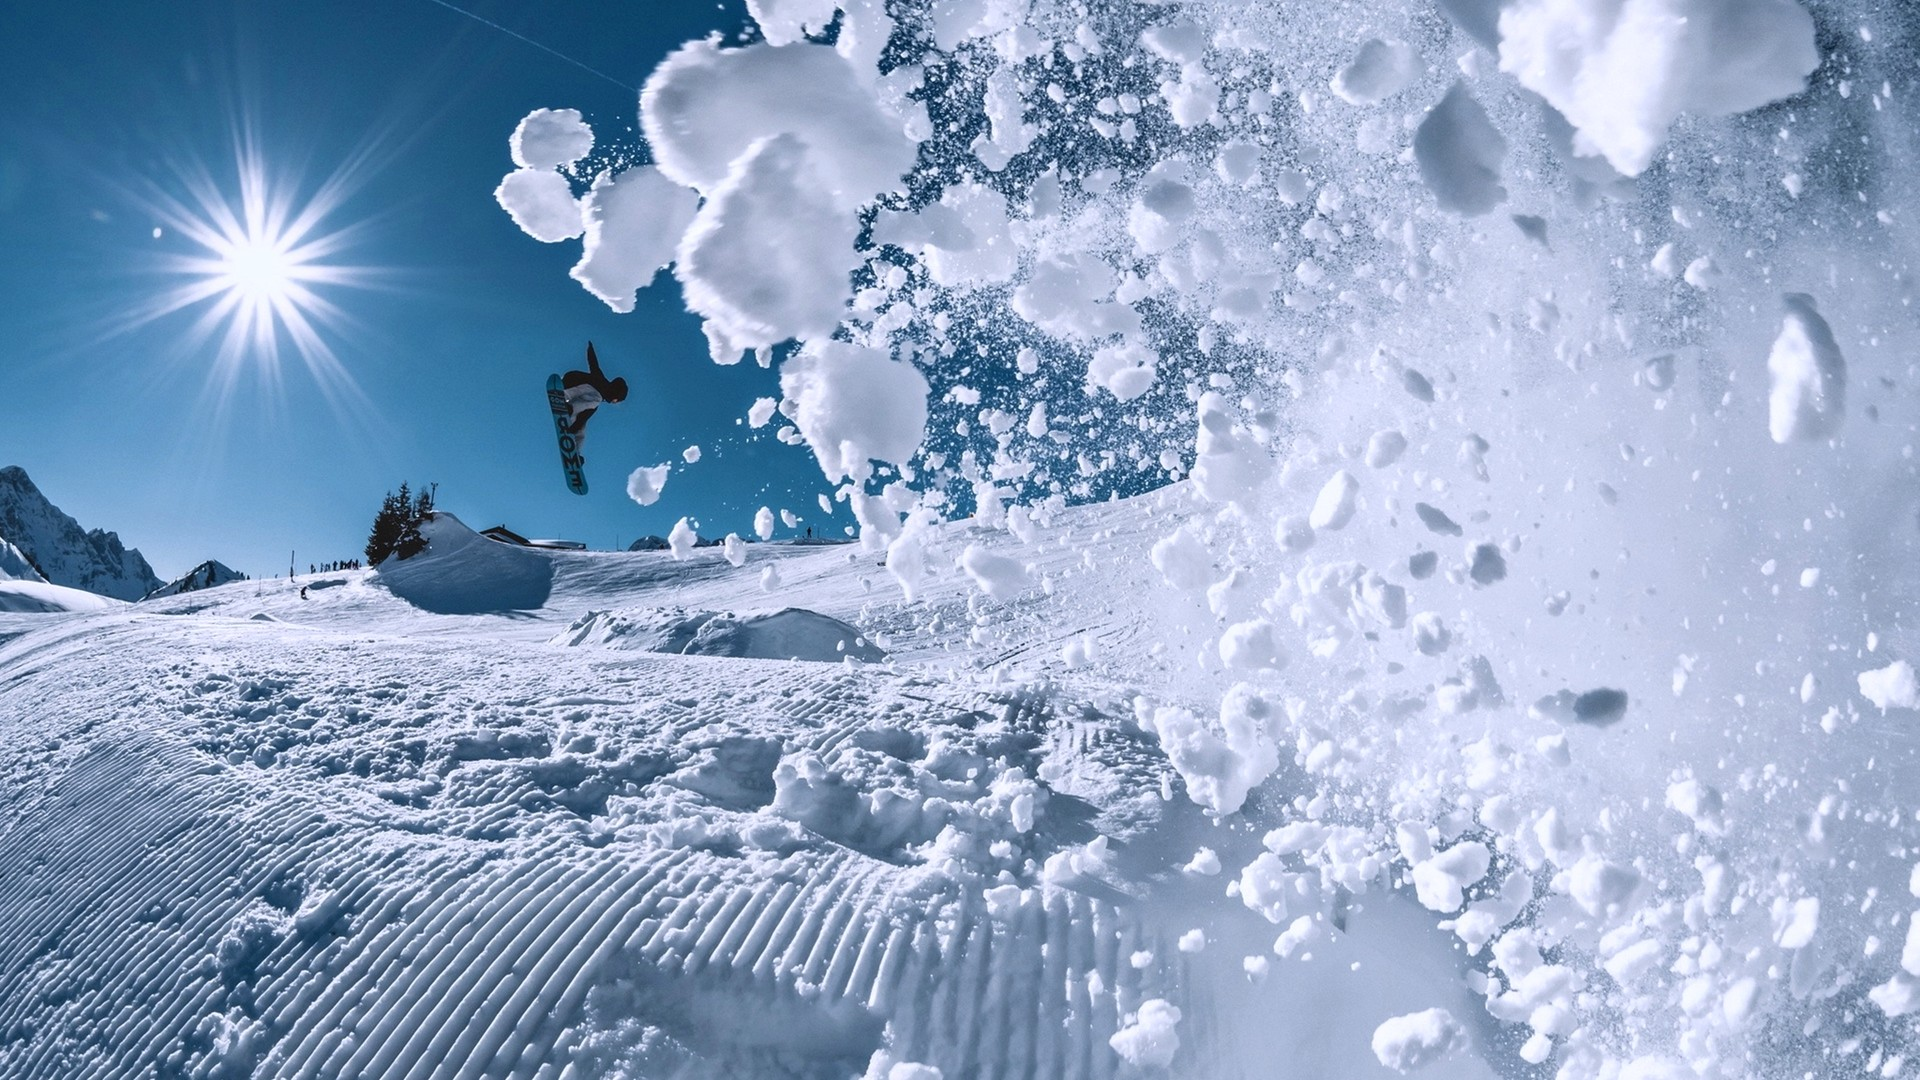 Wallpaper snowboarding winter snow 4k Sport 17399